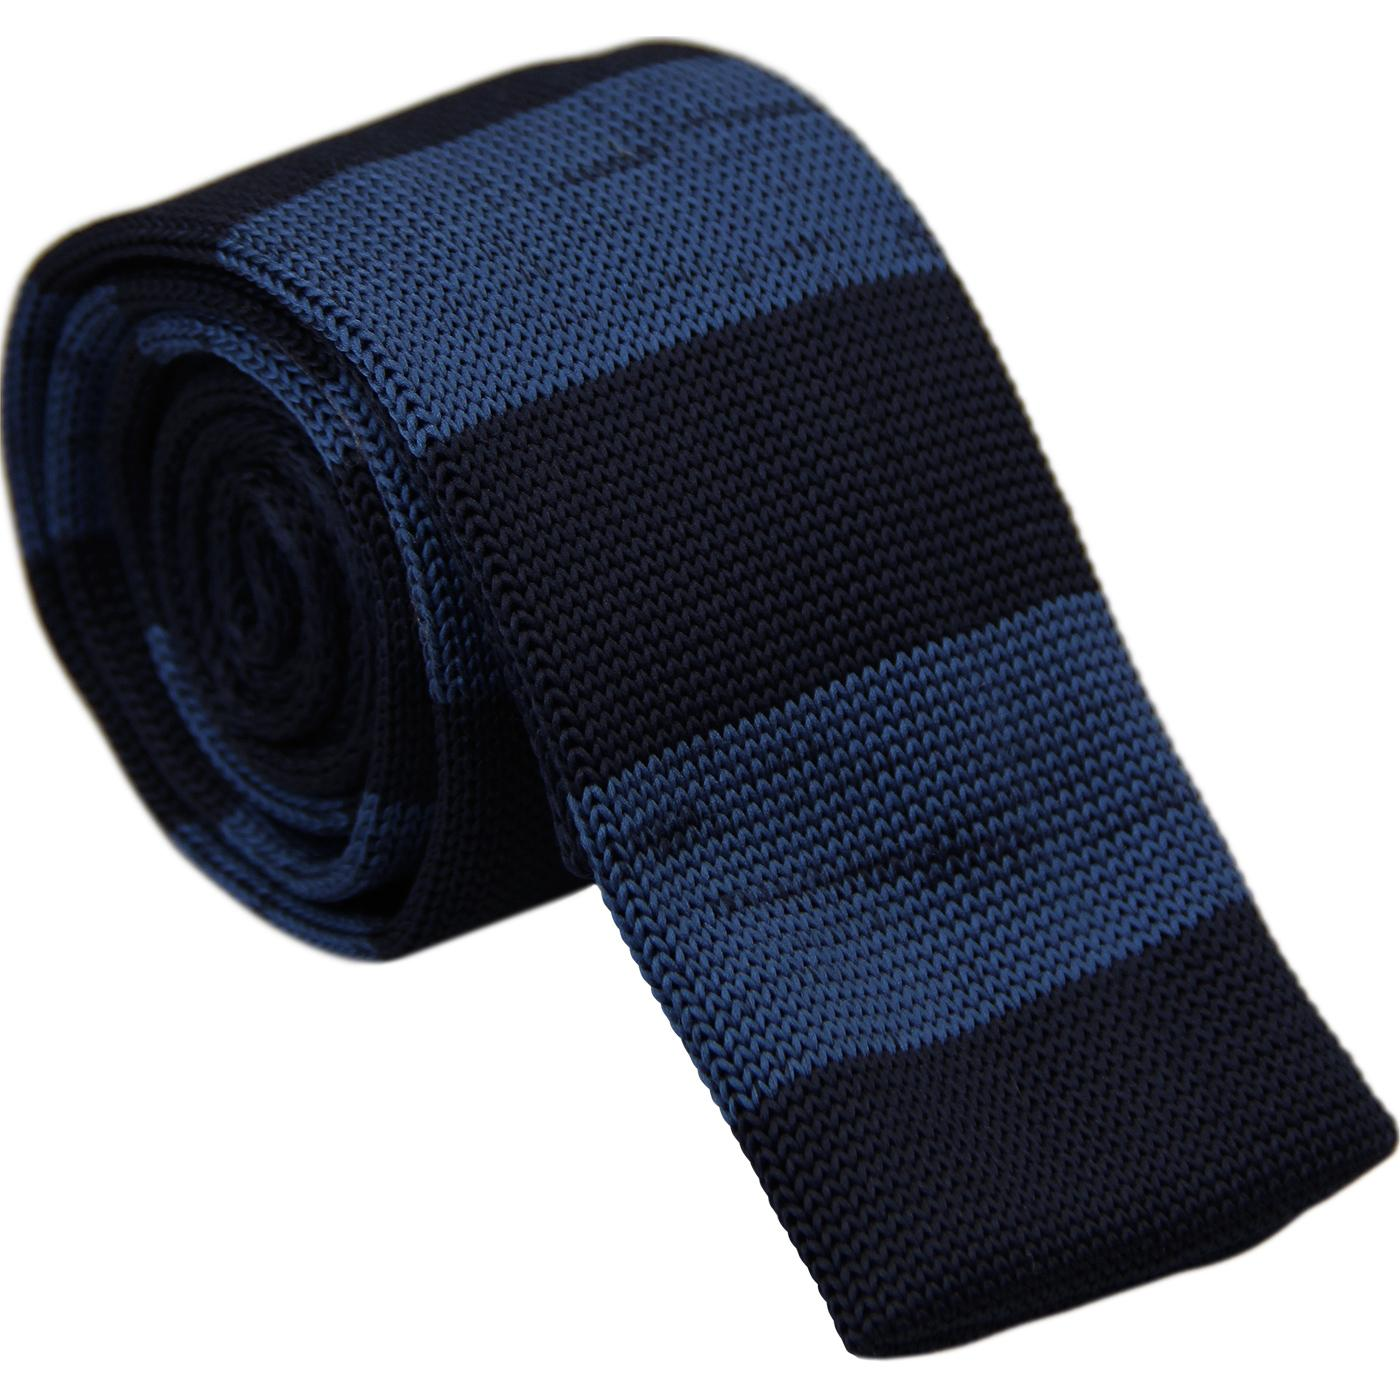 GIBSON LONDON Retro Mod Stripe Knitted Tie (Teal)